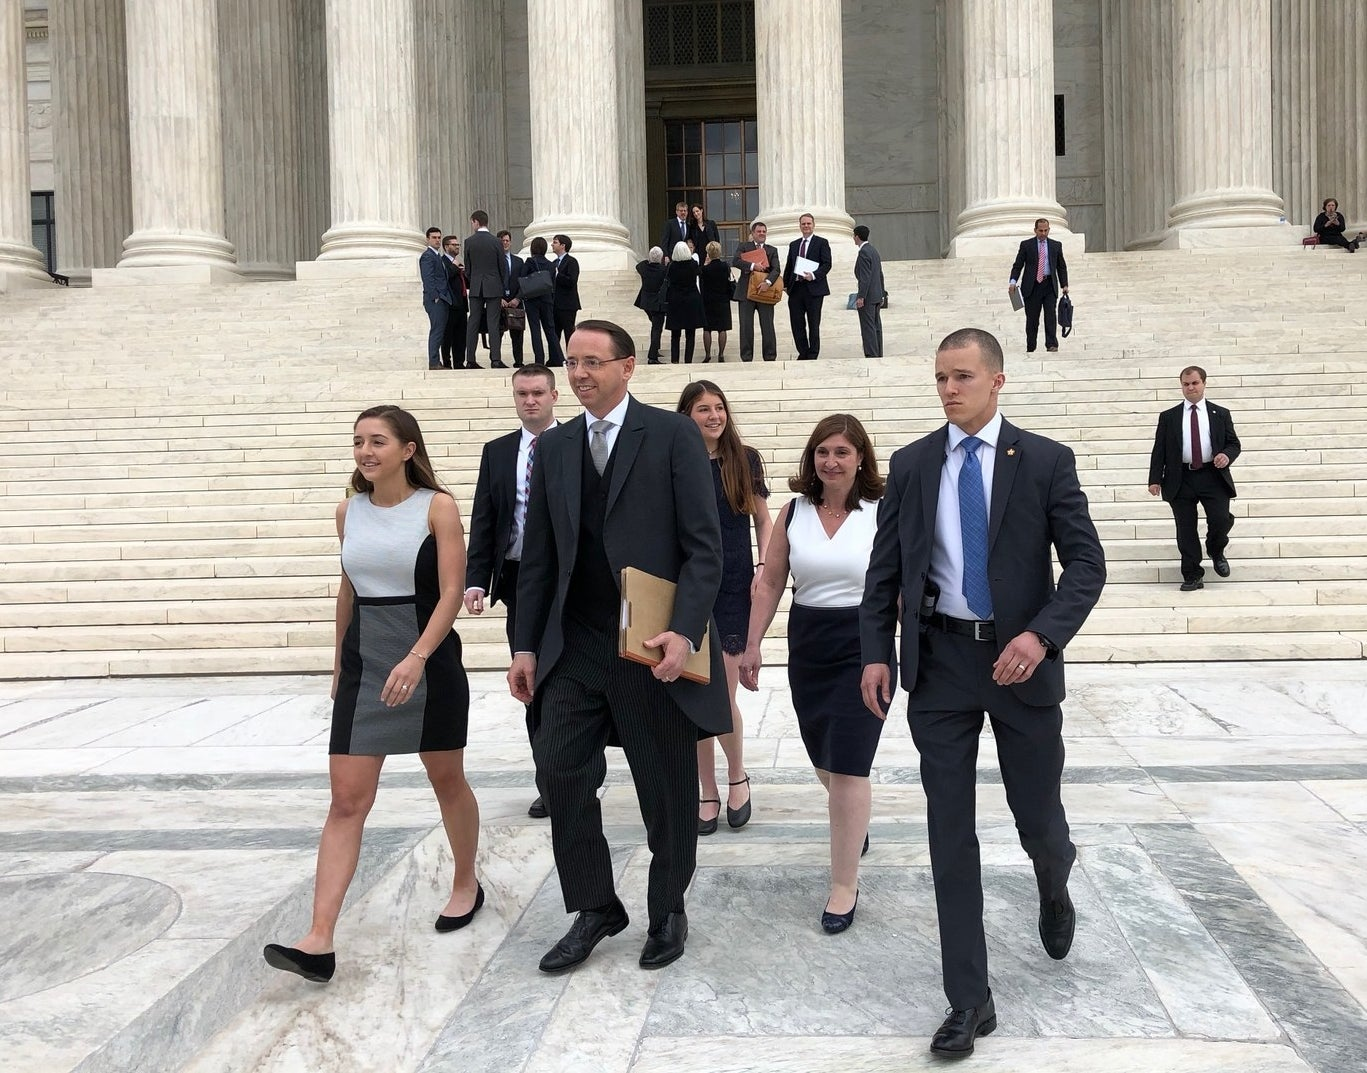 Deputy Attorney General Rod Rosenstein leaves the Supreme Court with his family after arguing before the justices on Monday.